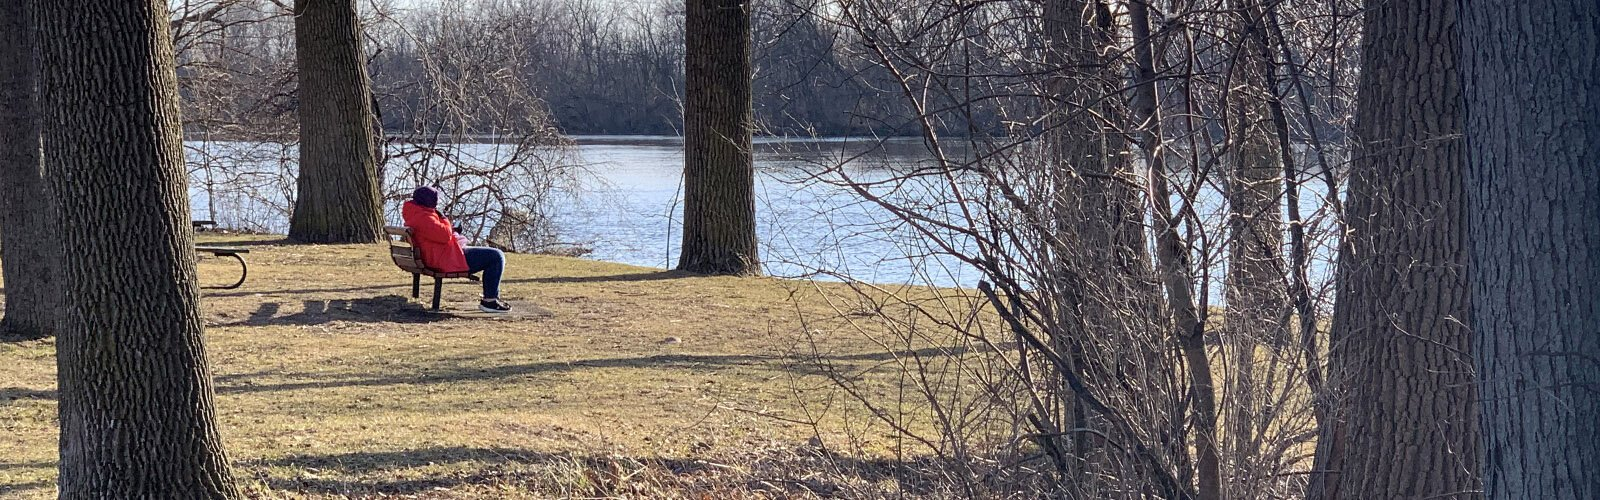 Nature at Riverside Park brings solace and comfort in difficult times.